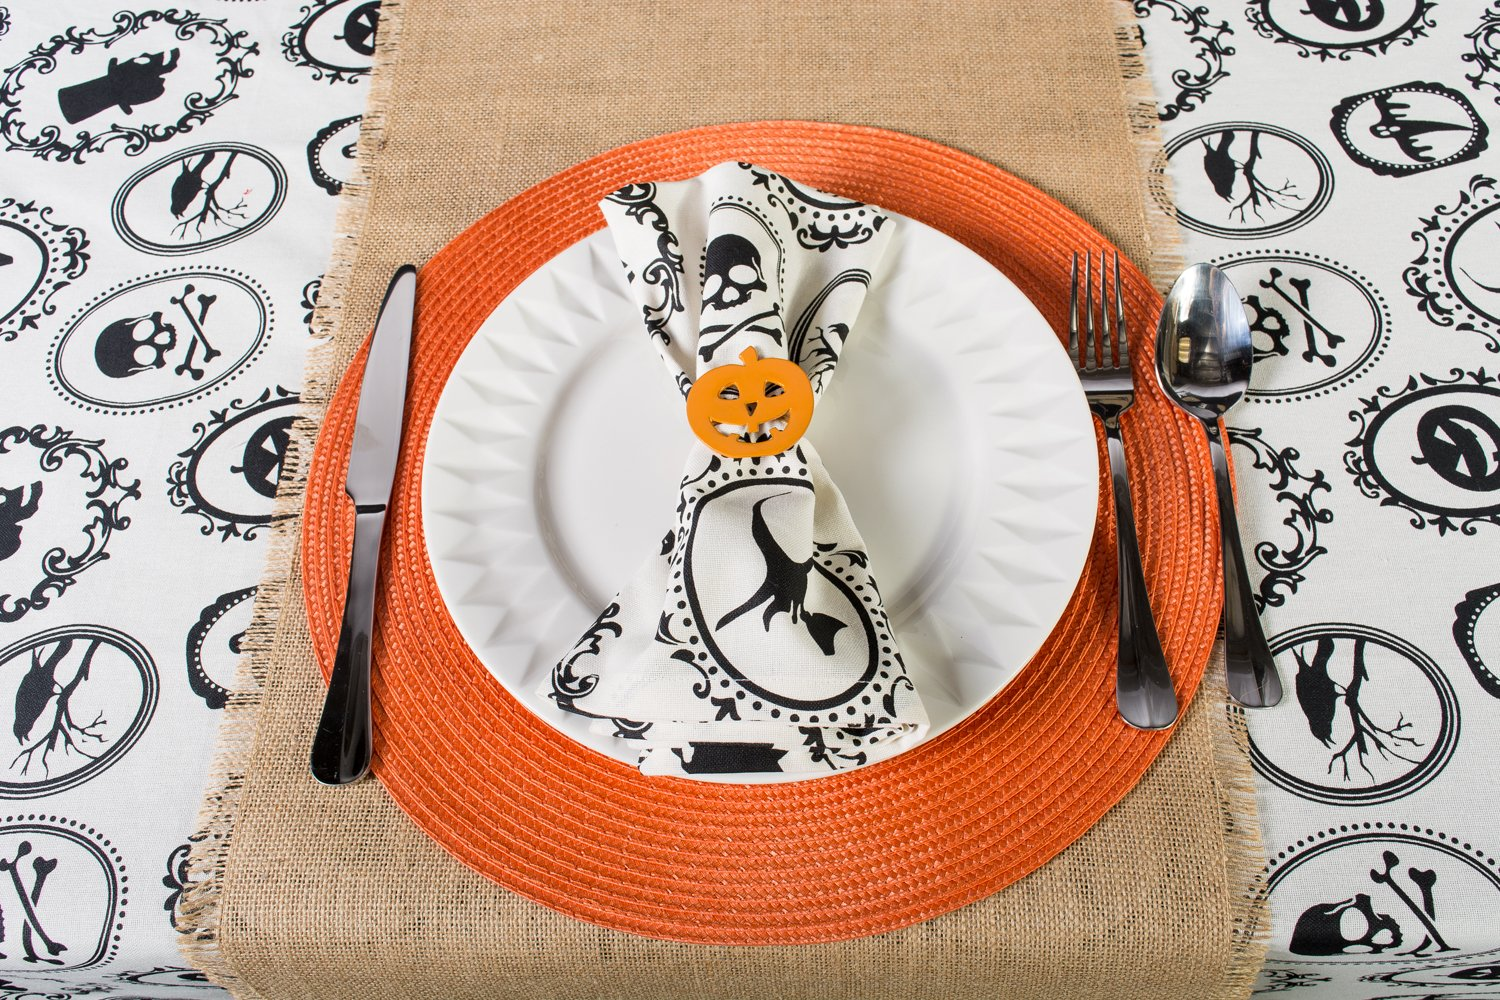 DII Oversized 20x20'' Cotton Napkin, Black & White Halloween Portrait - Perfect for Halloween, Dinner Parties and Scary Movie Nights by DII (Image #8)